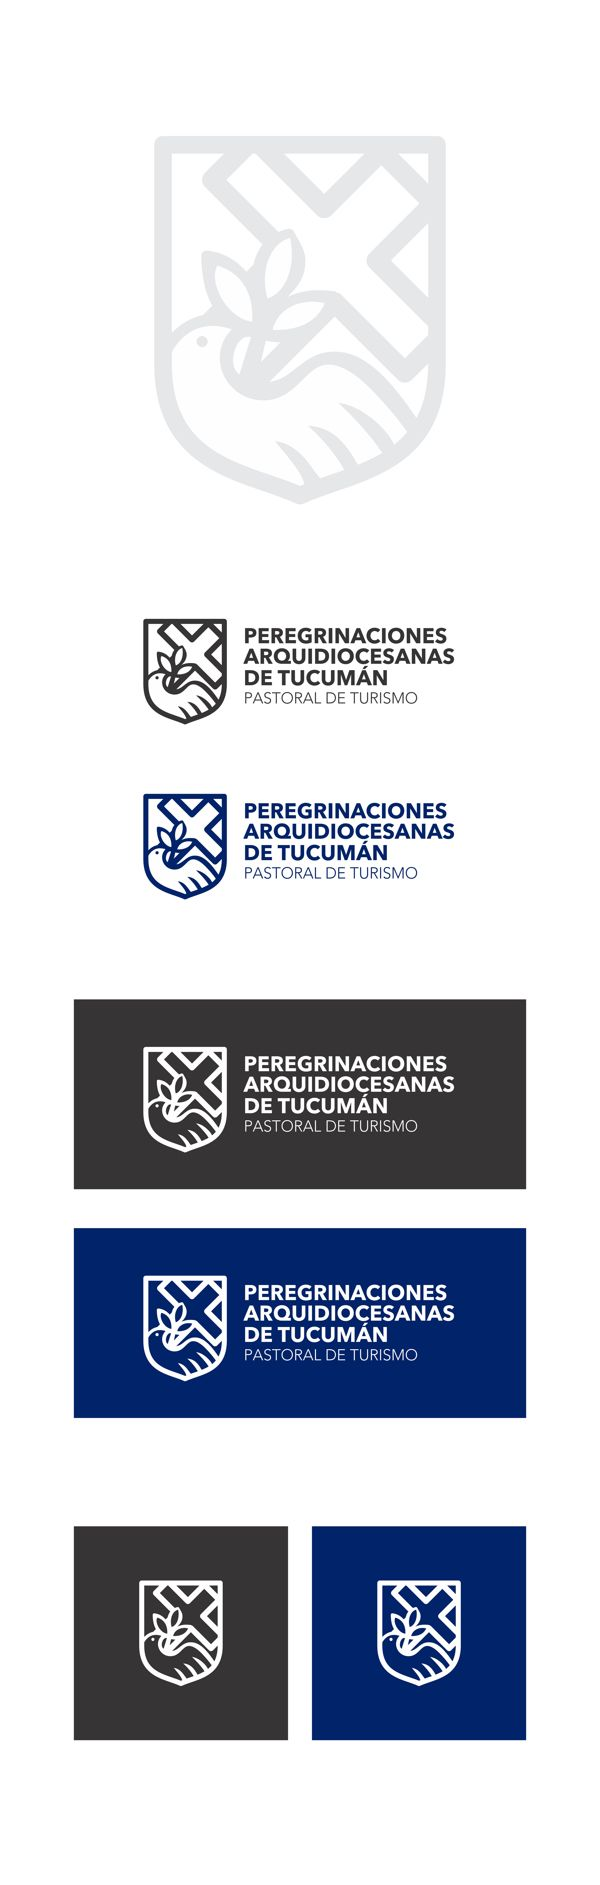 Isologotipo Pastoral de Turismo de Tucumán on Behance